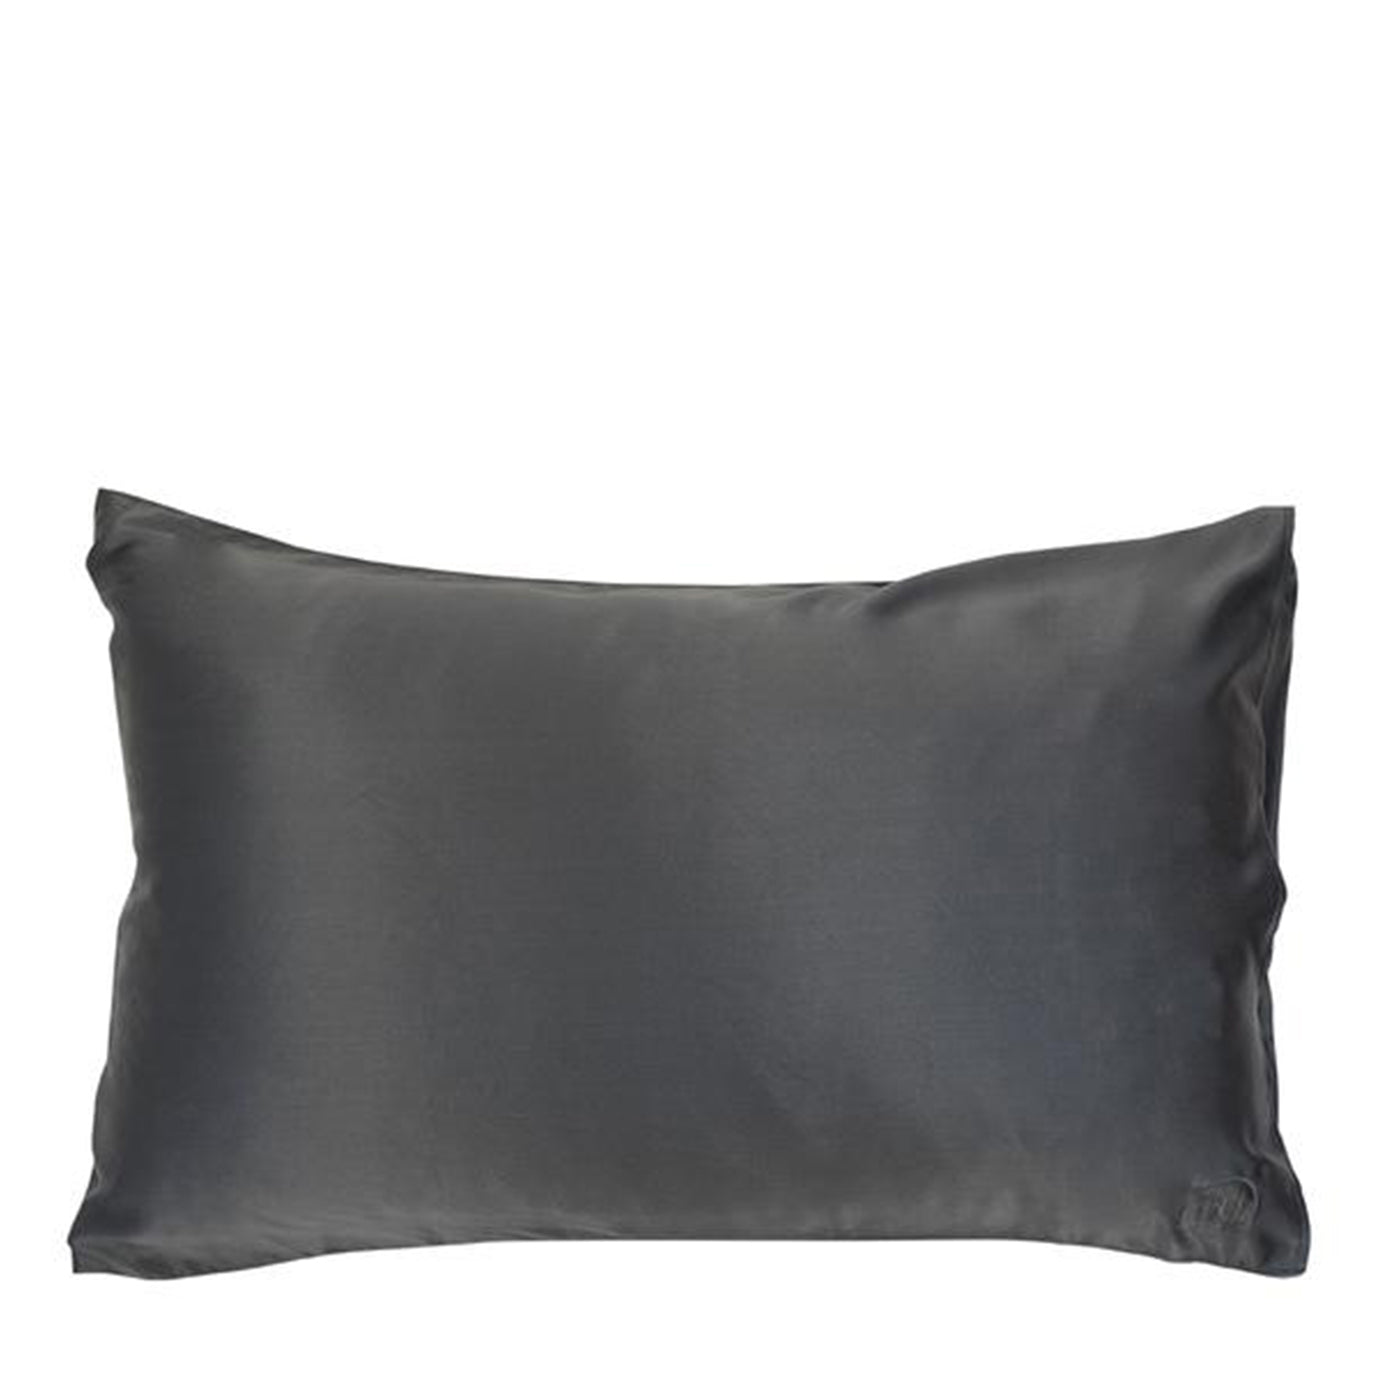 The Goodnight Co Silk Pillowcase Charcoal